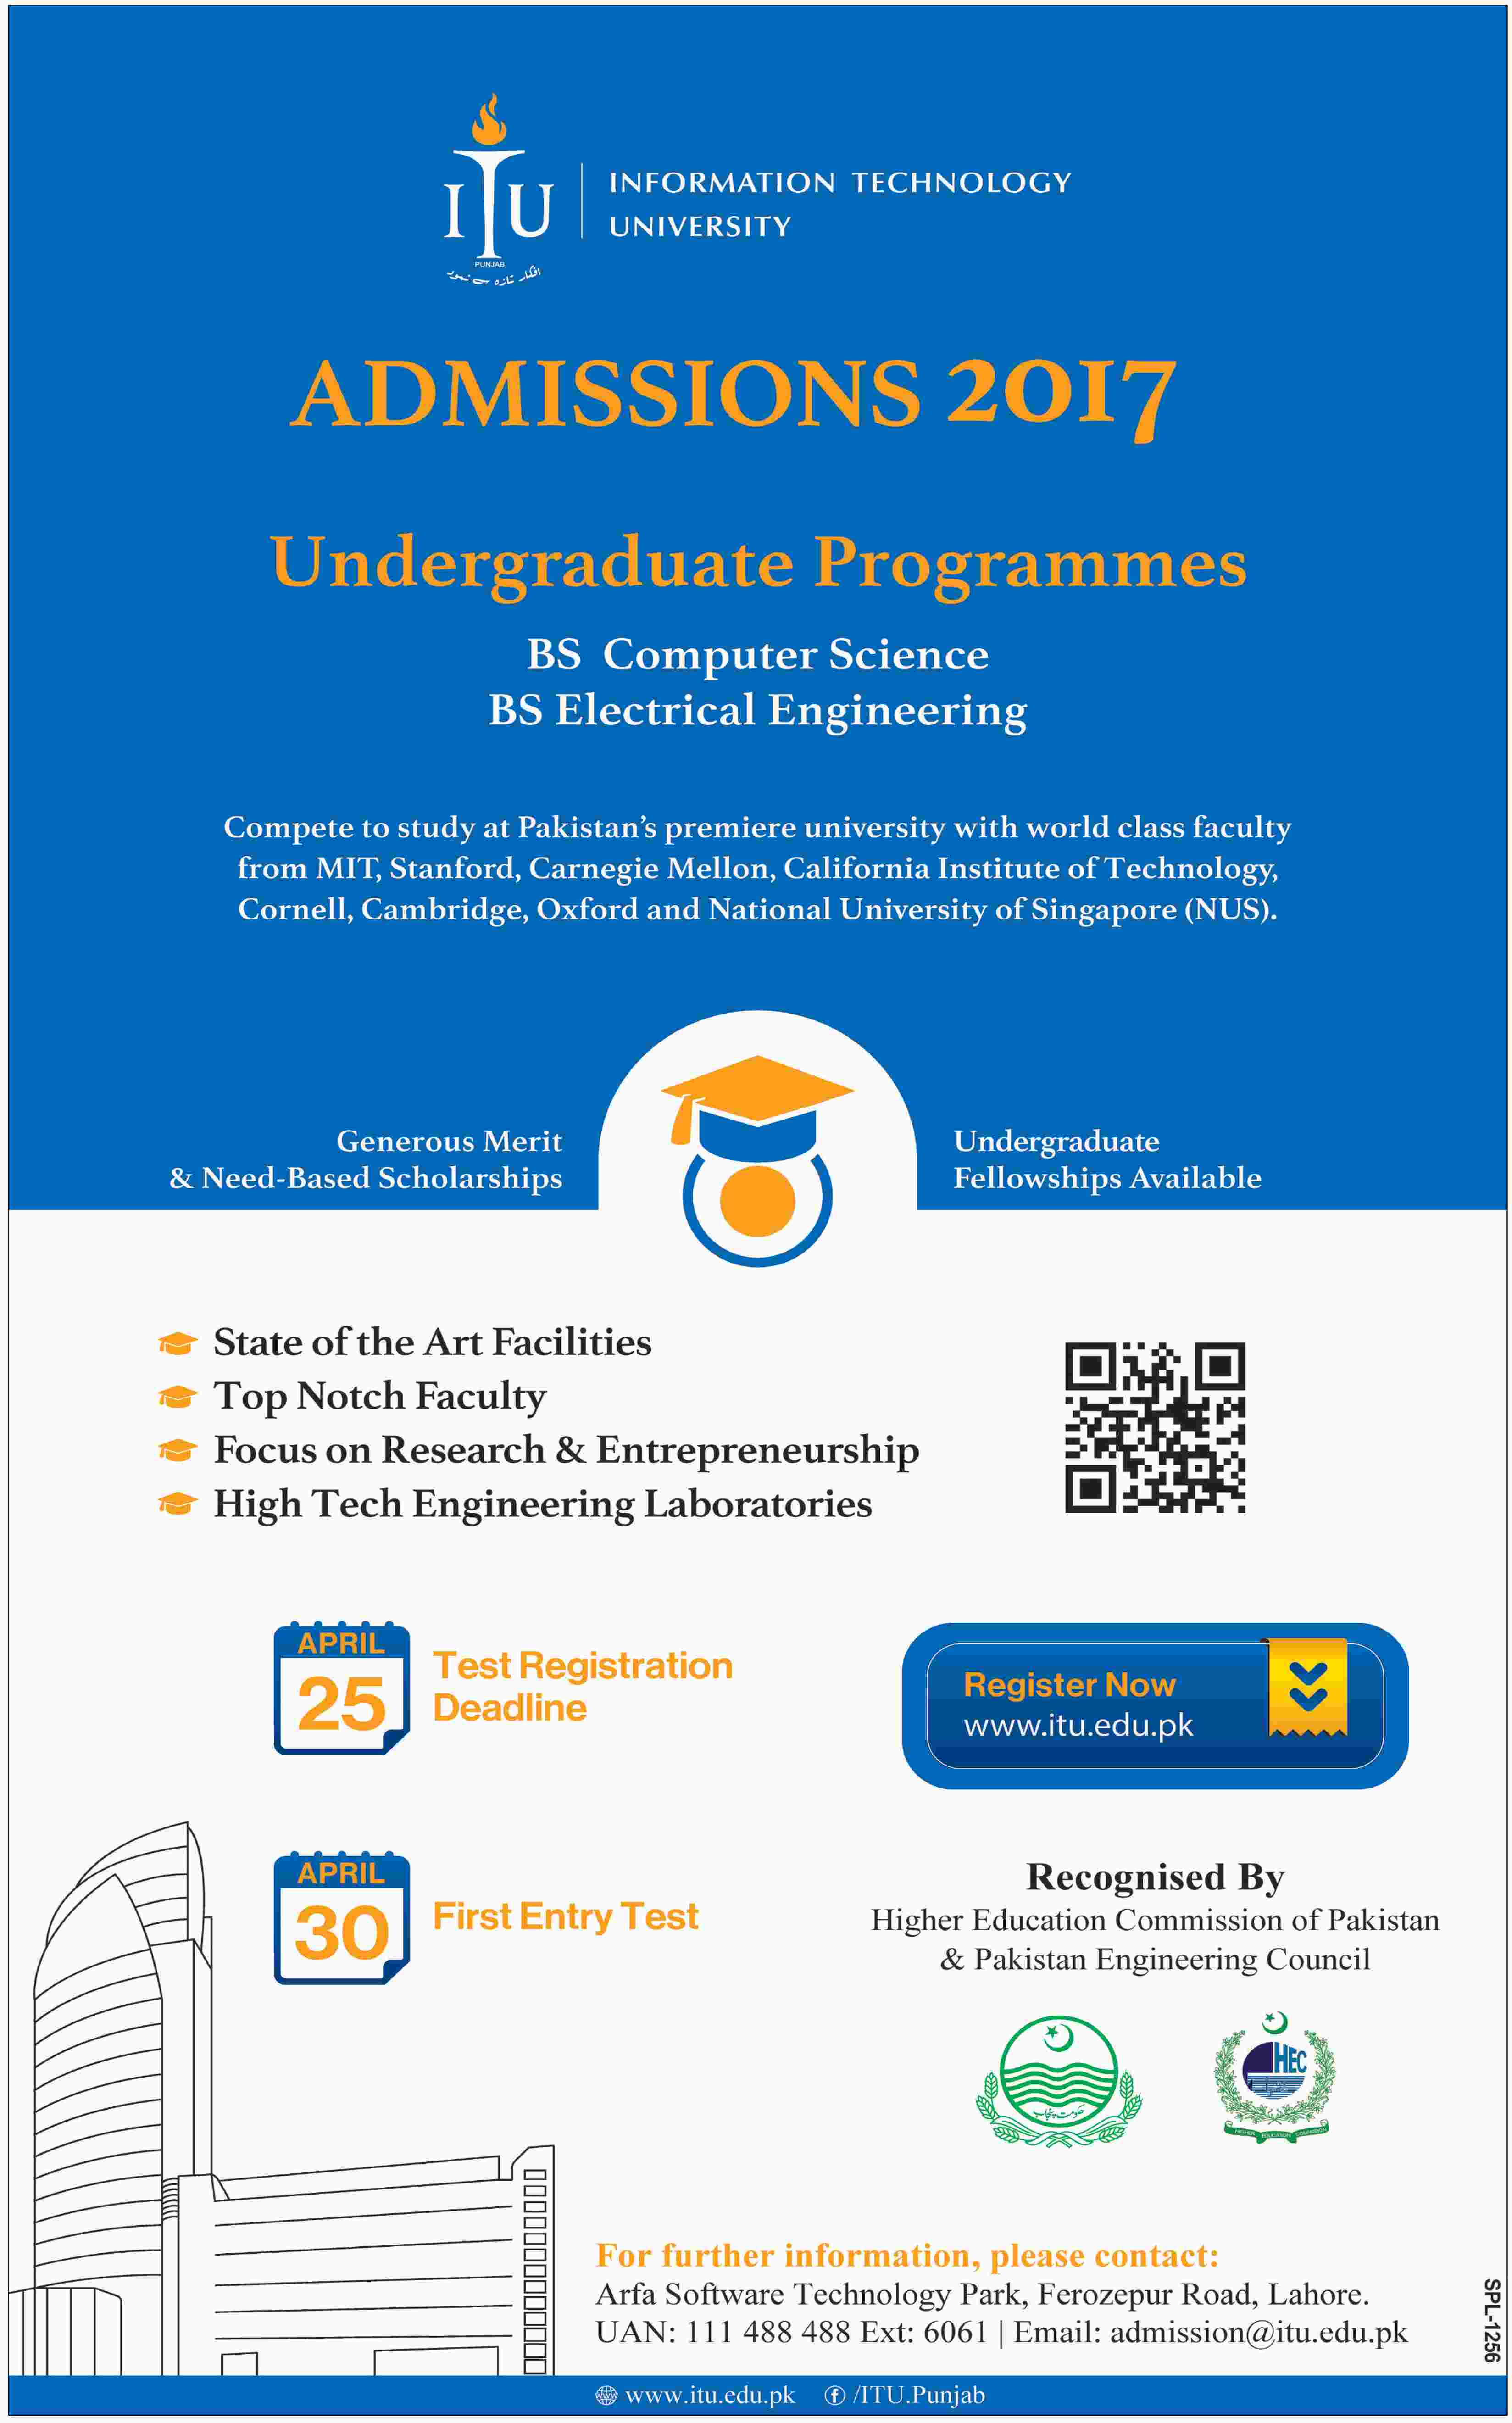 Admission Open in Information Technology University Lahore 23 Apr 2017